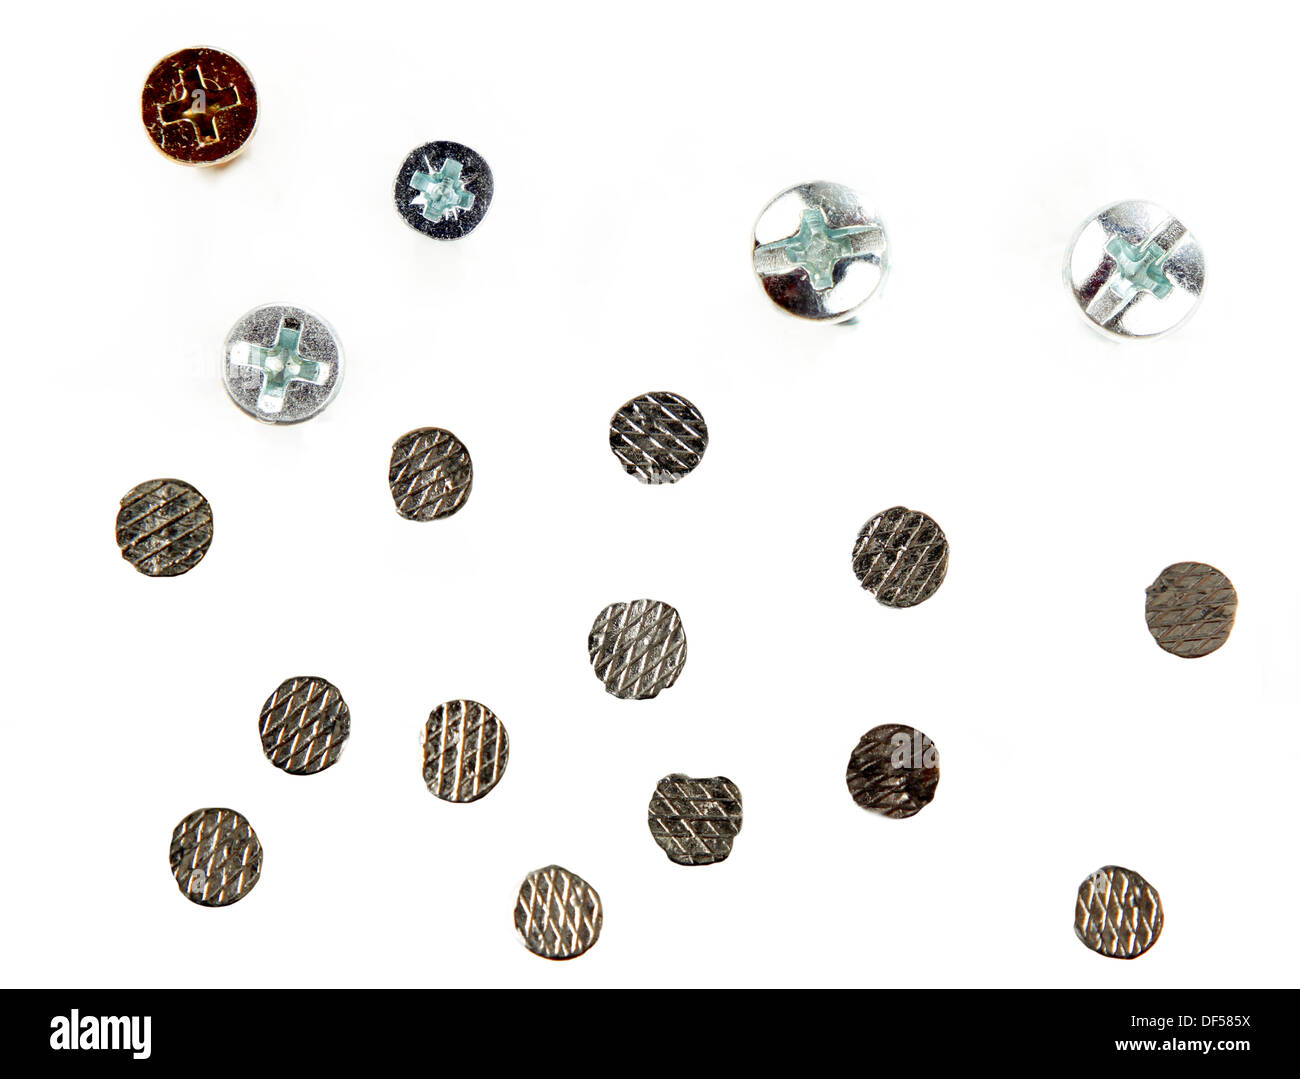 Nail and screw heads on plain background - Stock Image